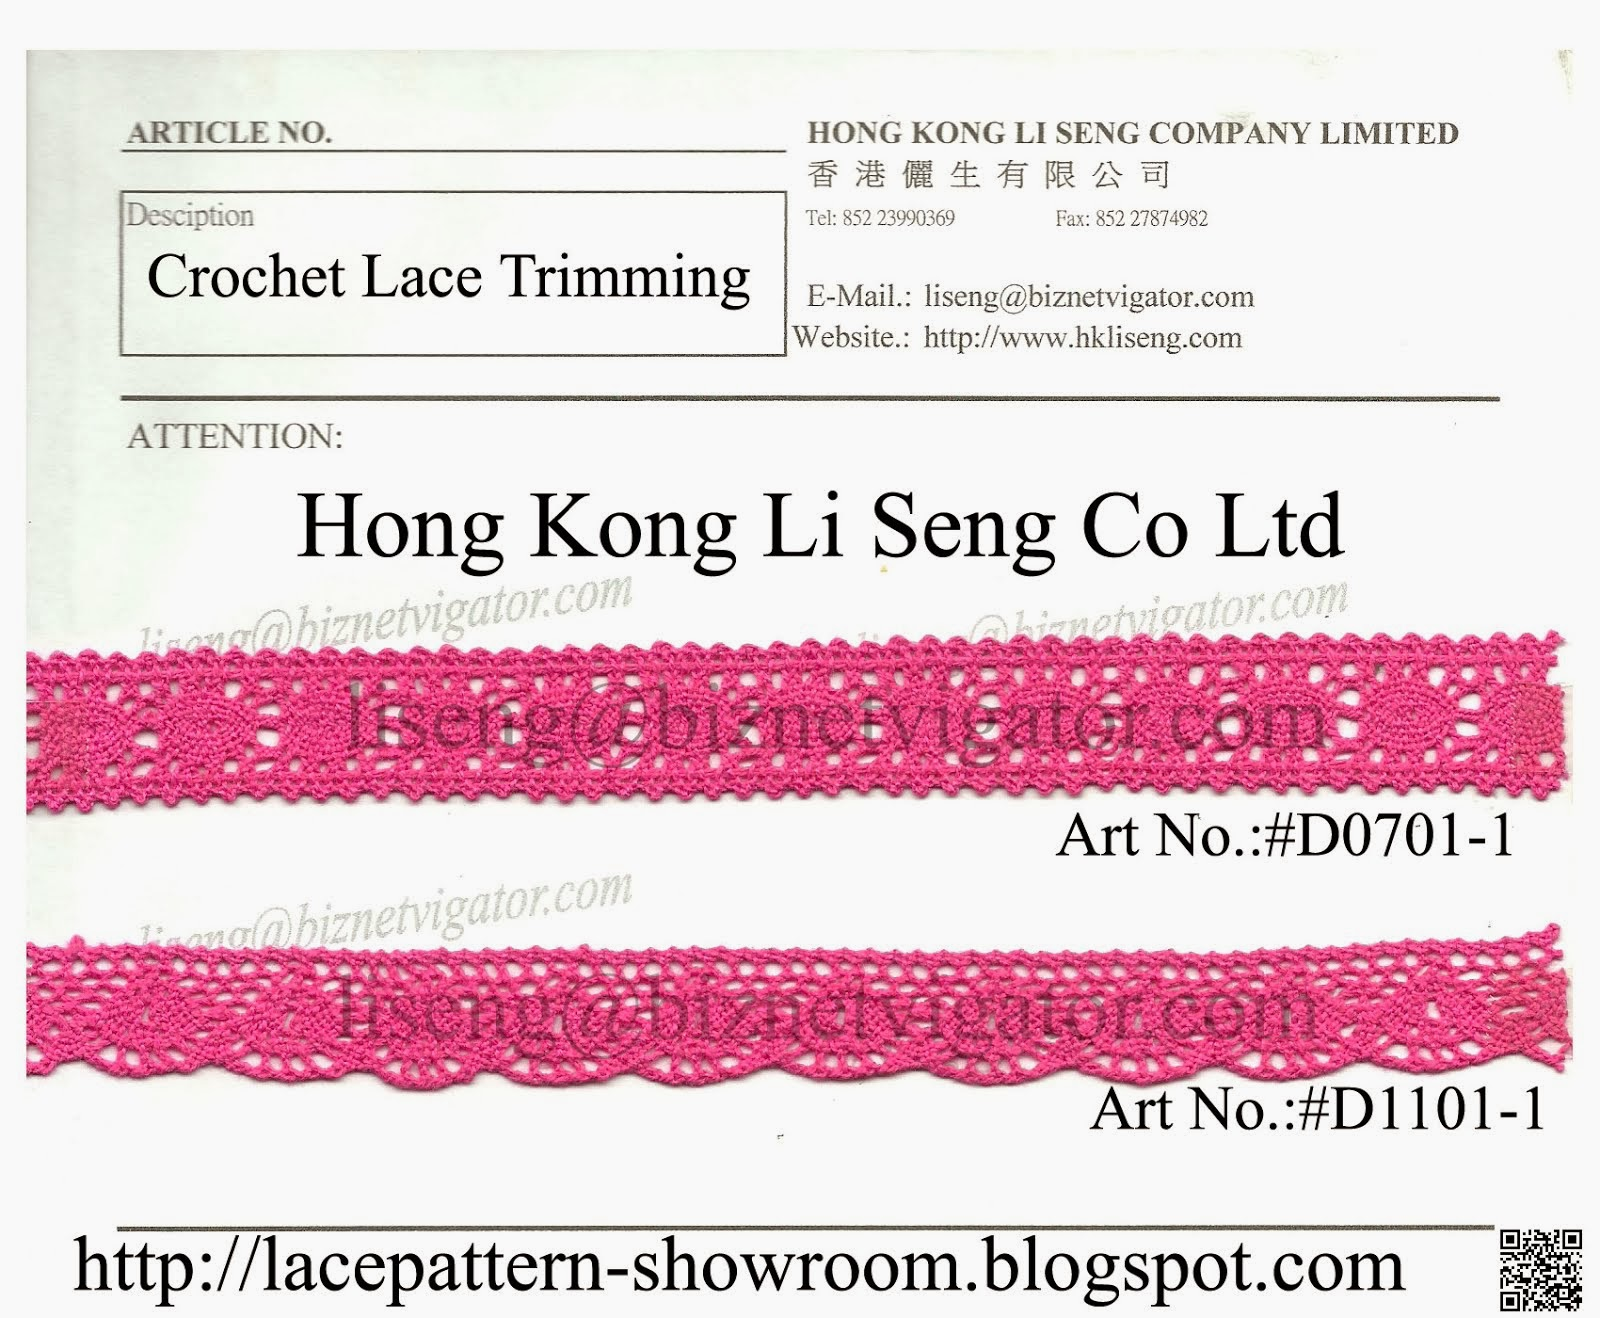 New Crochet Lace Pattern - Hong Kong Li Seng Co Ltd